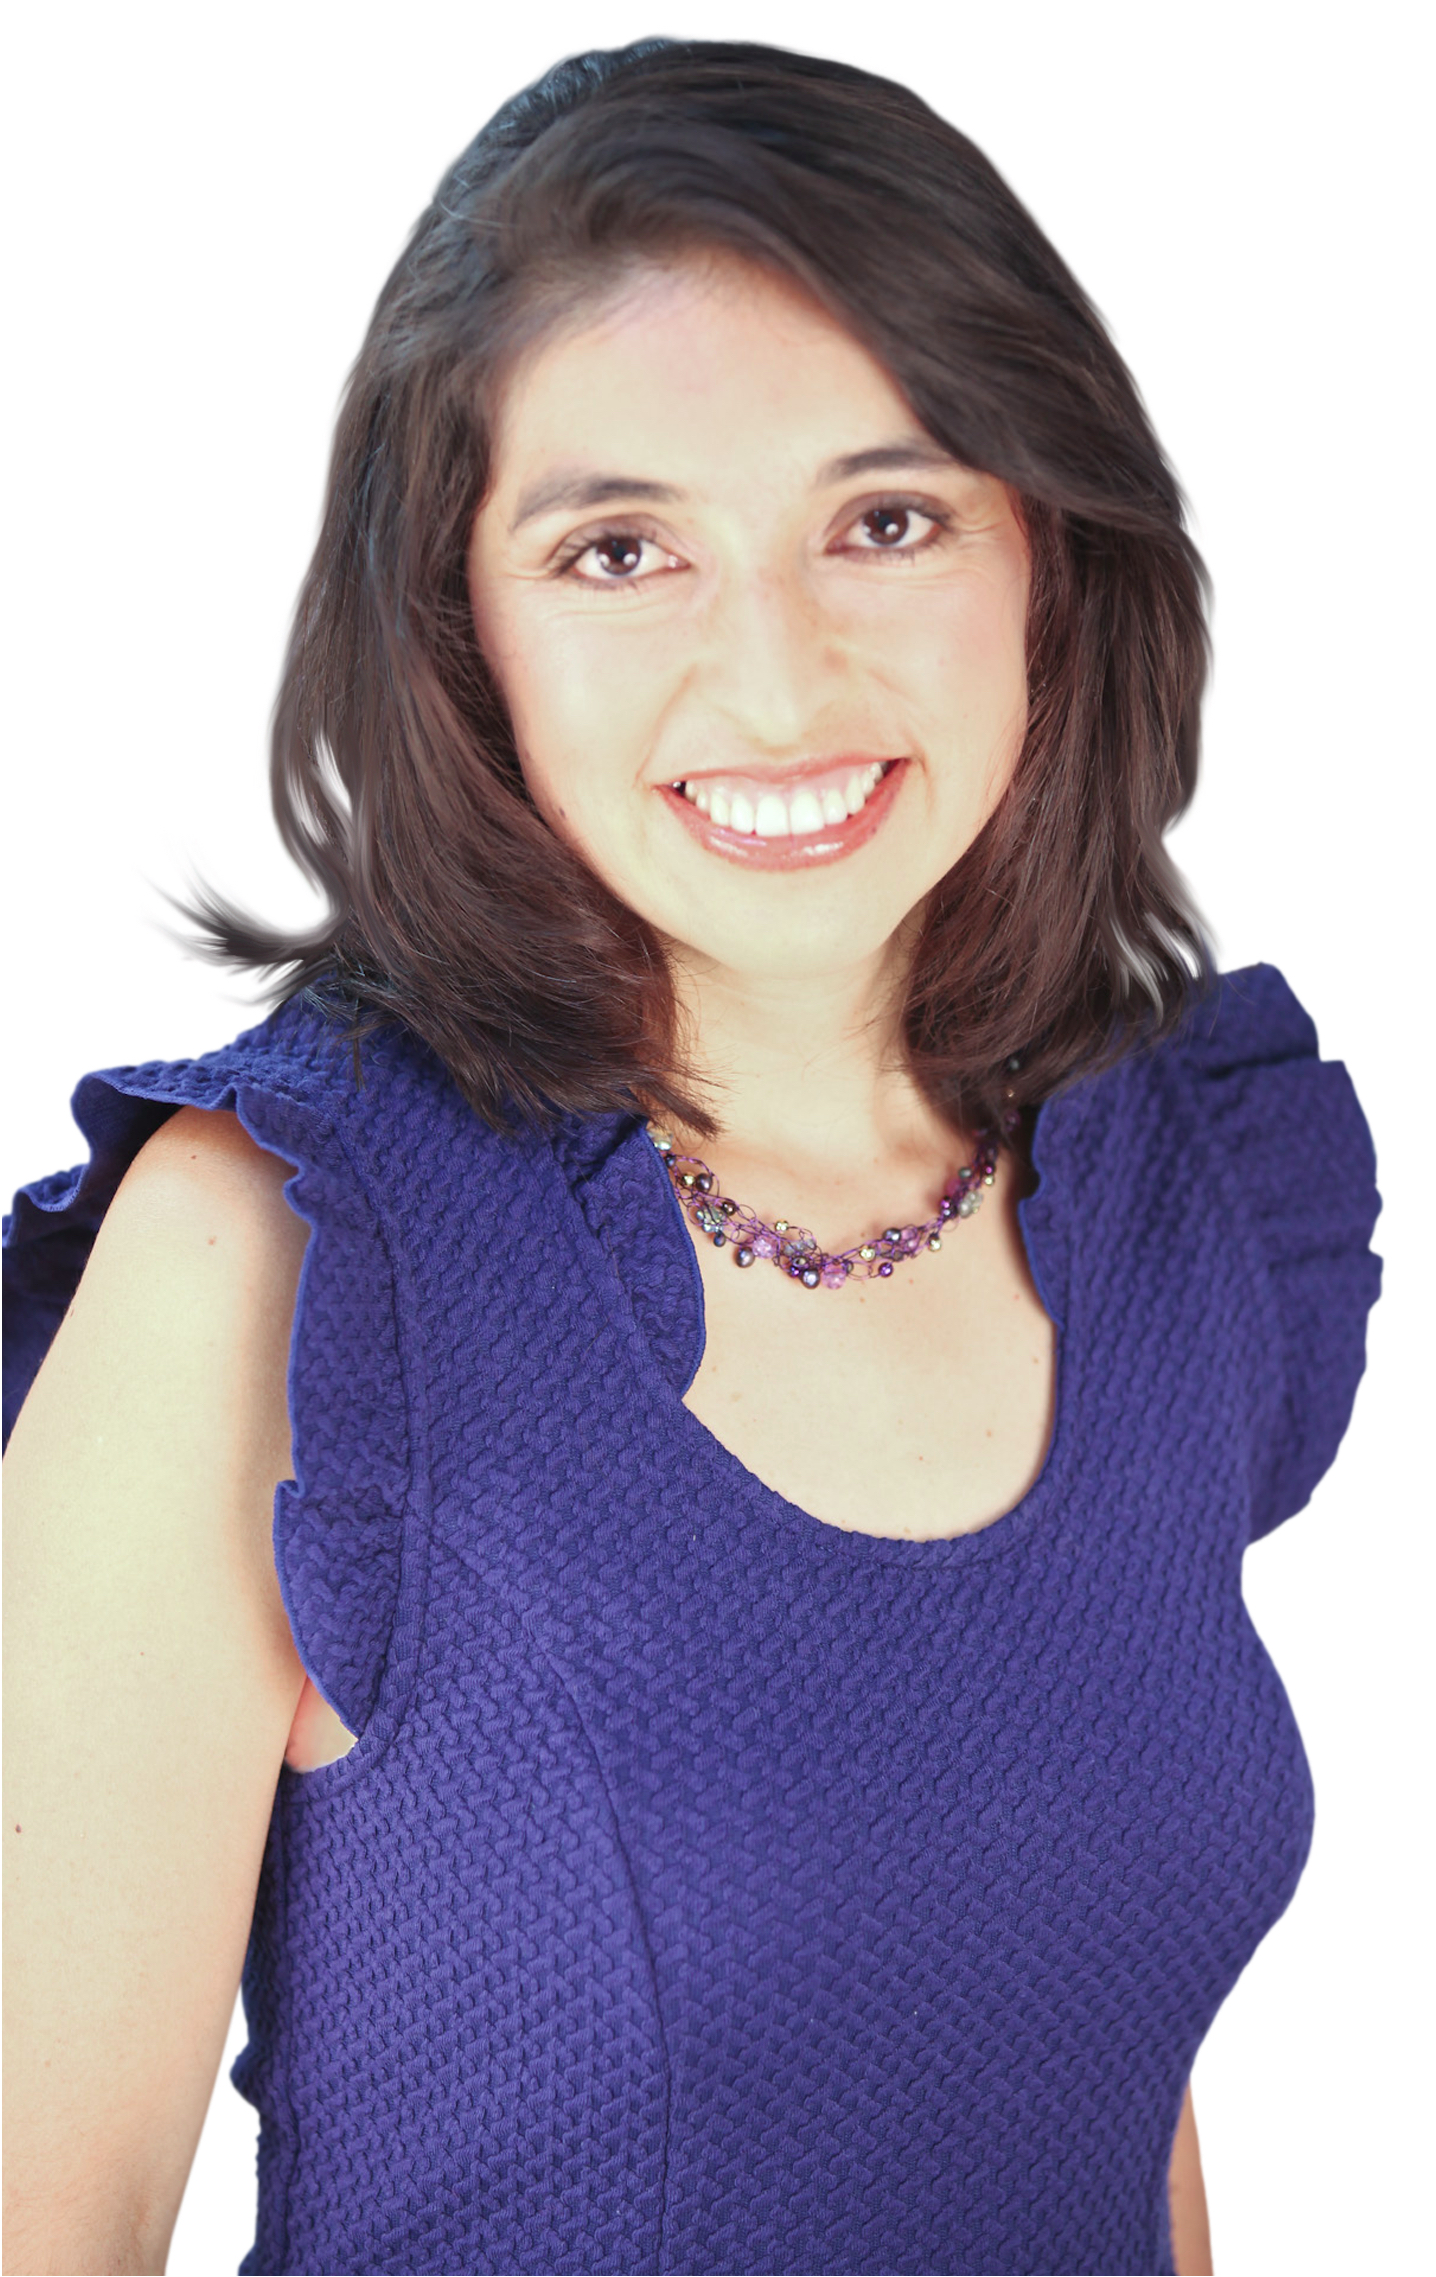 monica-salazar-financial-coaching